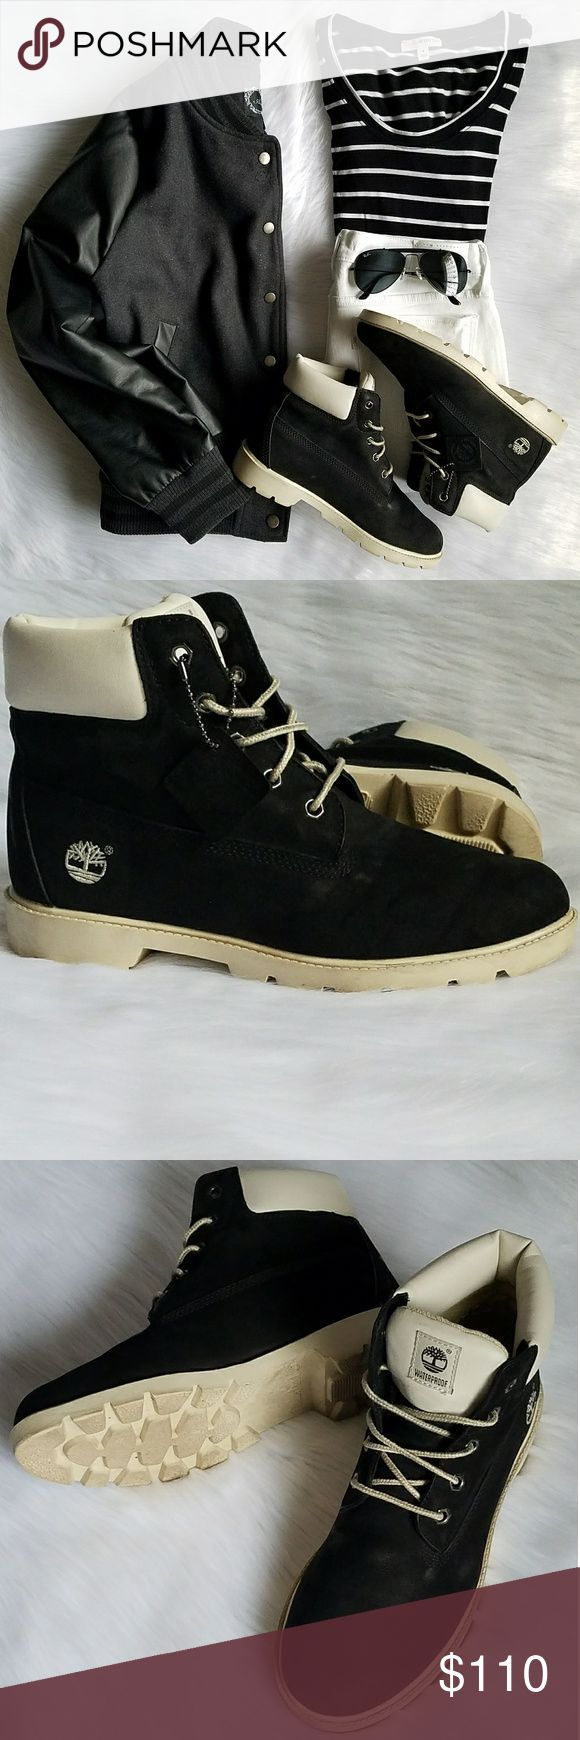 Junior 6-Inch Premium Waterproof Boots Rare and almost impossible to find pair of unisex Timberland boots in Cream/ Black/ Noir color. Gently worn a couple of times, still in clean/ very good condition, with both original box + shopping bag included. Minor black jean stains on both tongue and lace, (see pic #7 & #8). Bottom soles are hardly marked. 100% waterproof. Size is Juniors 6 which is equivalent to a Women's size 7.5. For a casual way to wear Timberland boots, team a varsity jacket…